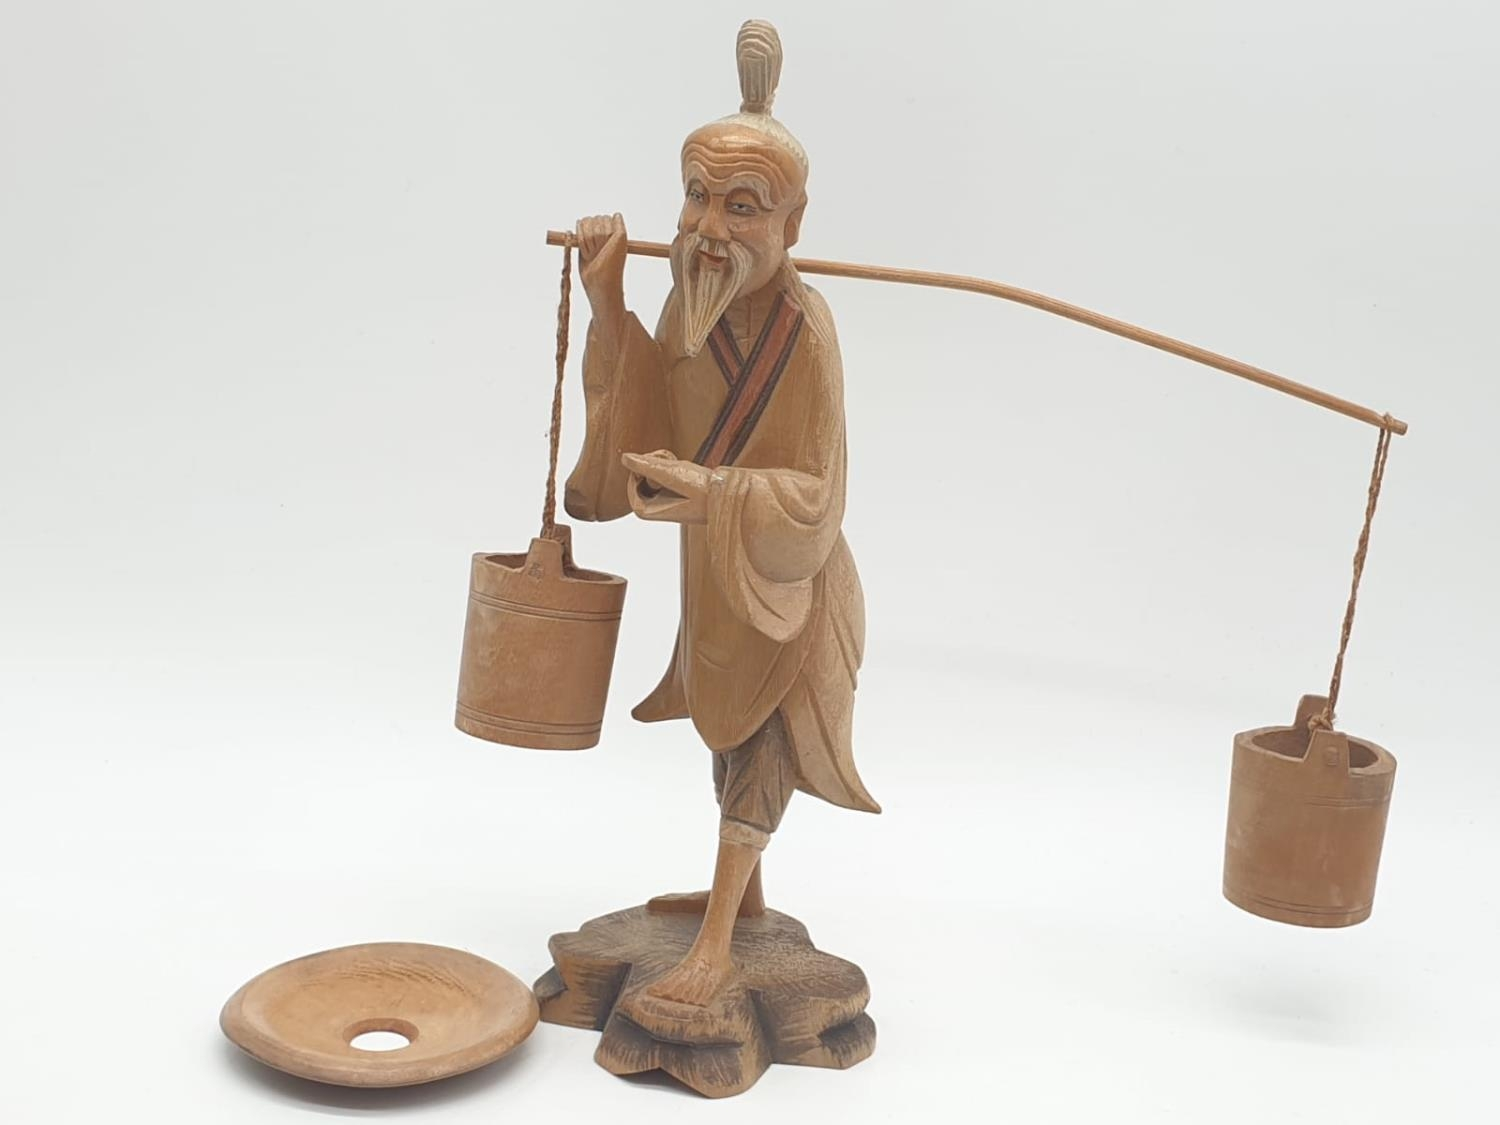 Hand carved wooden figure a Chinese pedlar. 20cm tall.